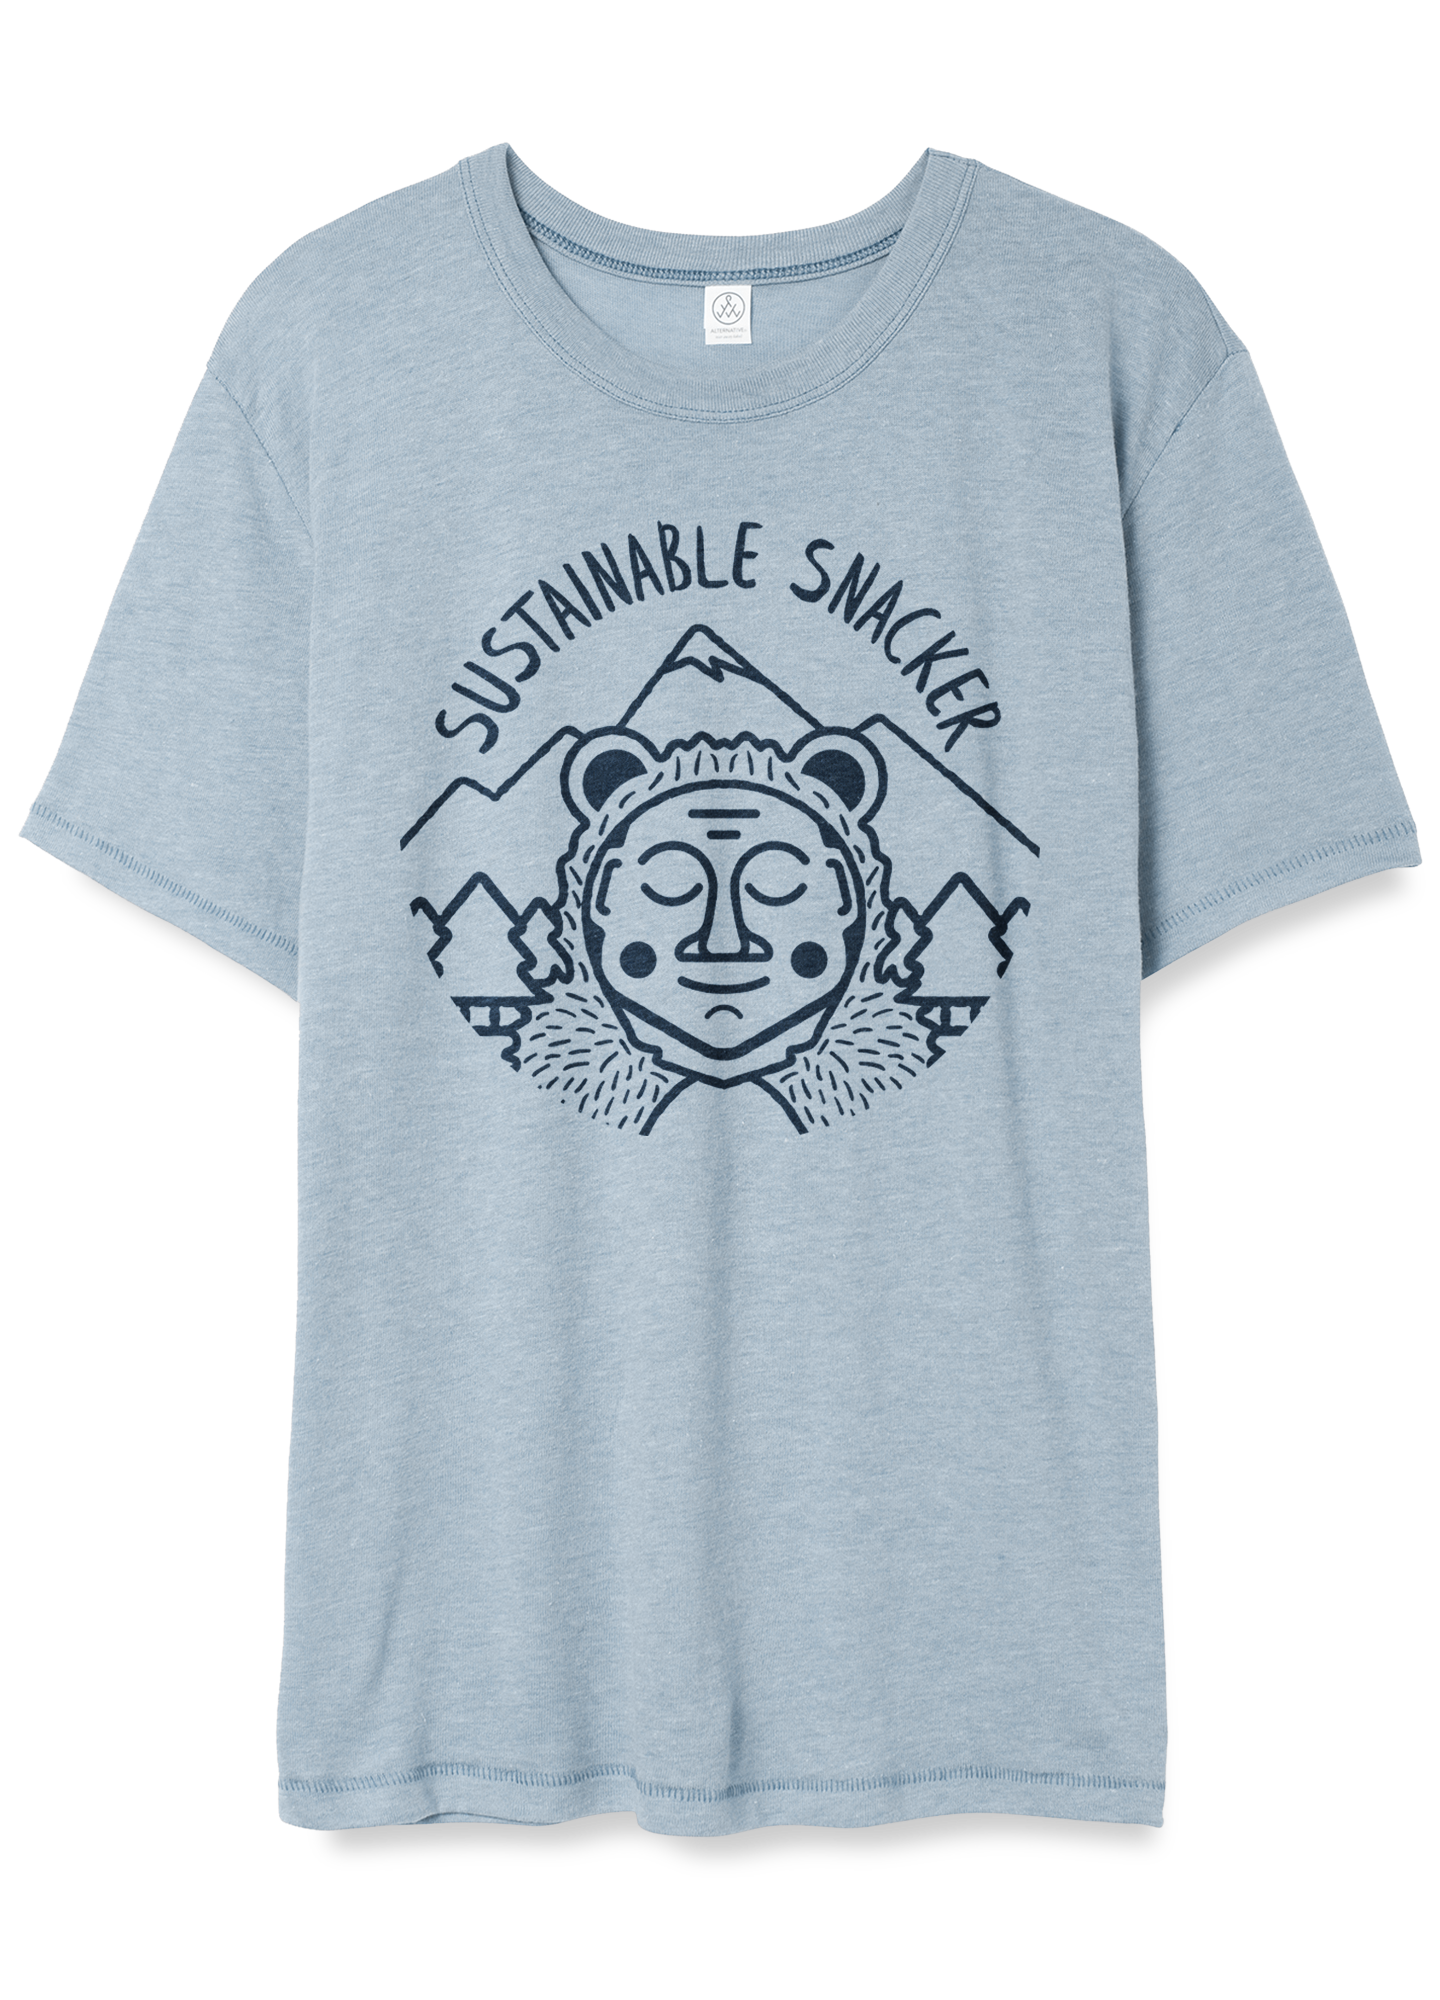 The Sustainable Snacker Tee